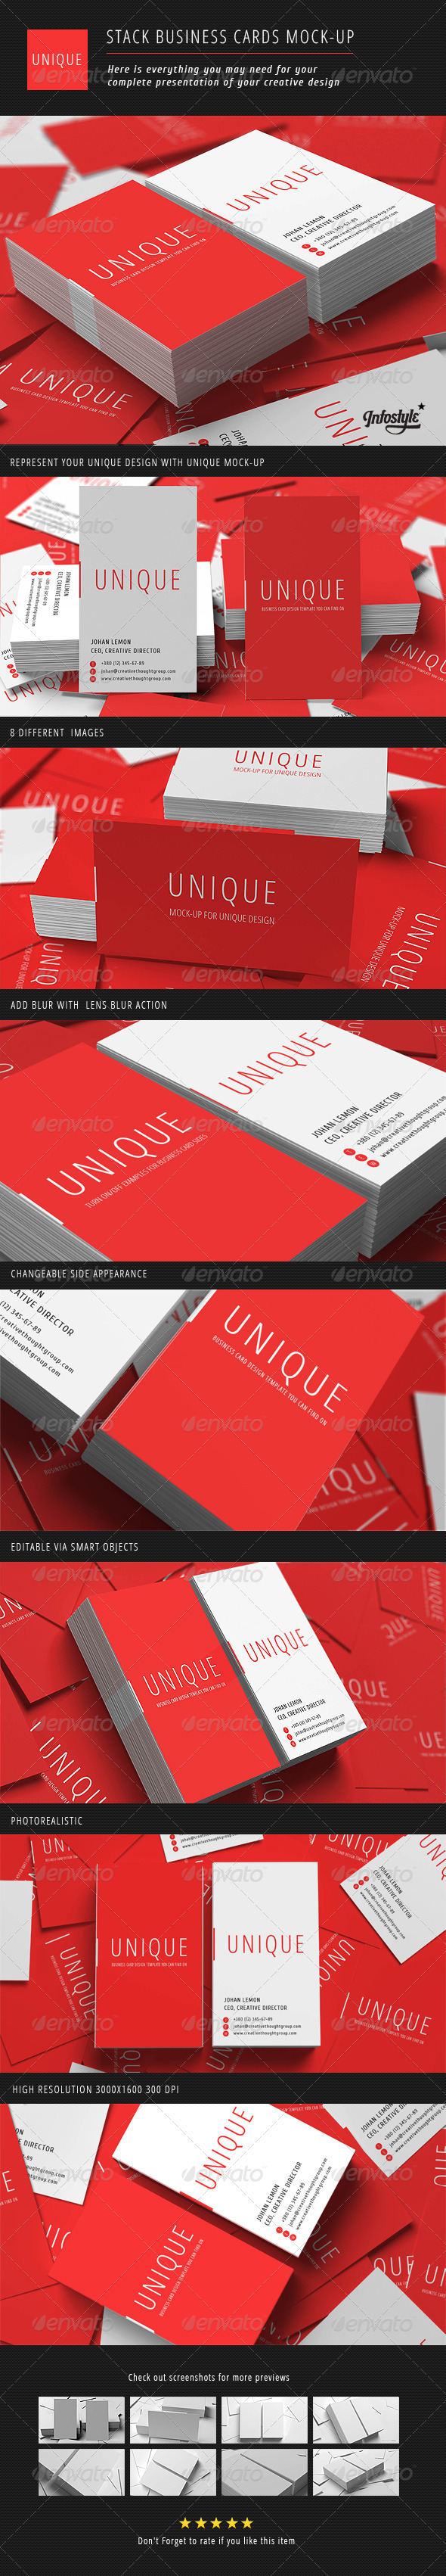 Stack business cards mock up by wpway graphicriver stack business cards mock up business cards print reheart Images